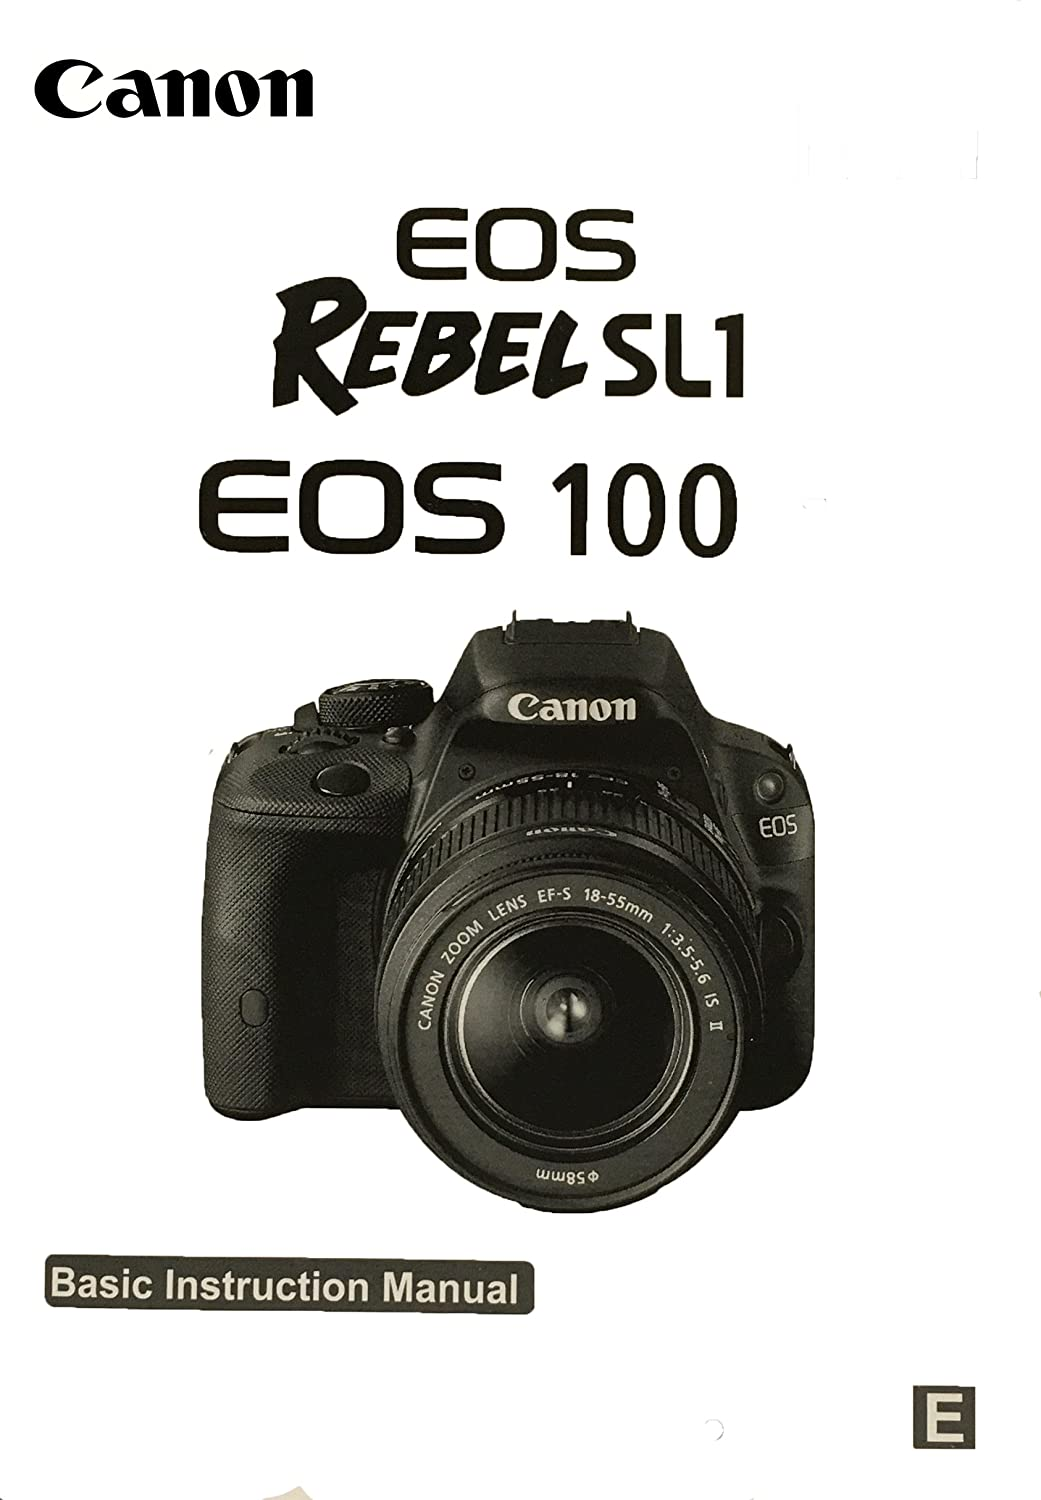 Buy Canon EOS Rebel SL1 Basic Instruction Manual for Cameras Online at Low  Price in India | Canon Camera Reviews & Ratings - Amazon.in